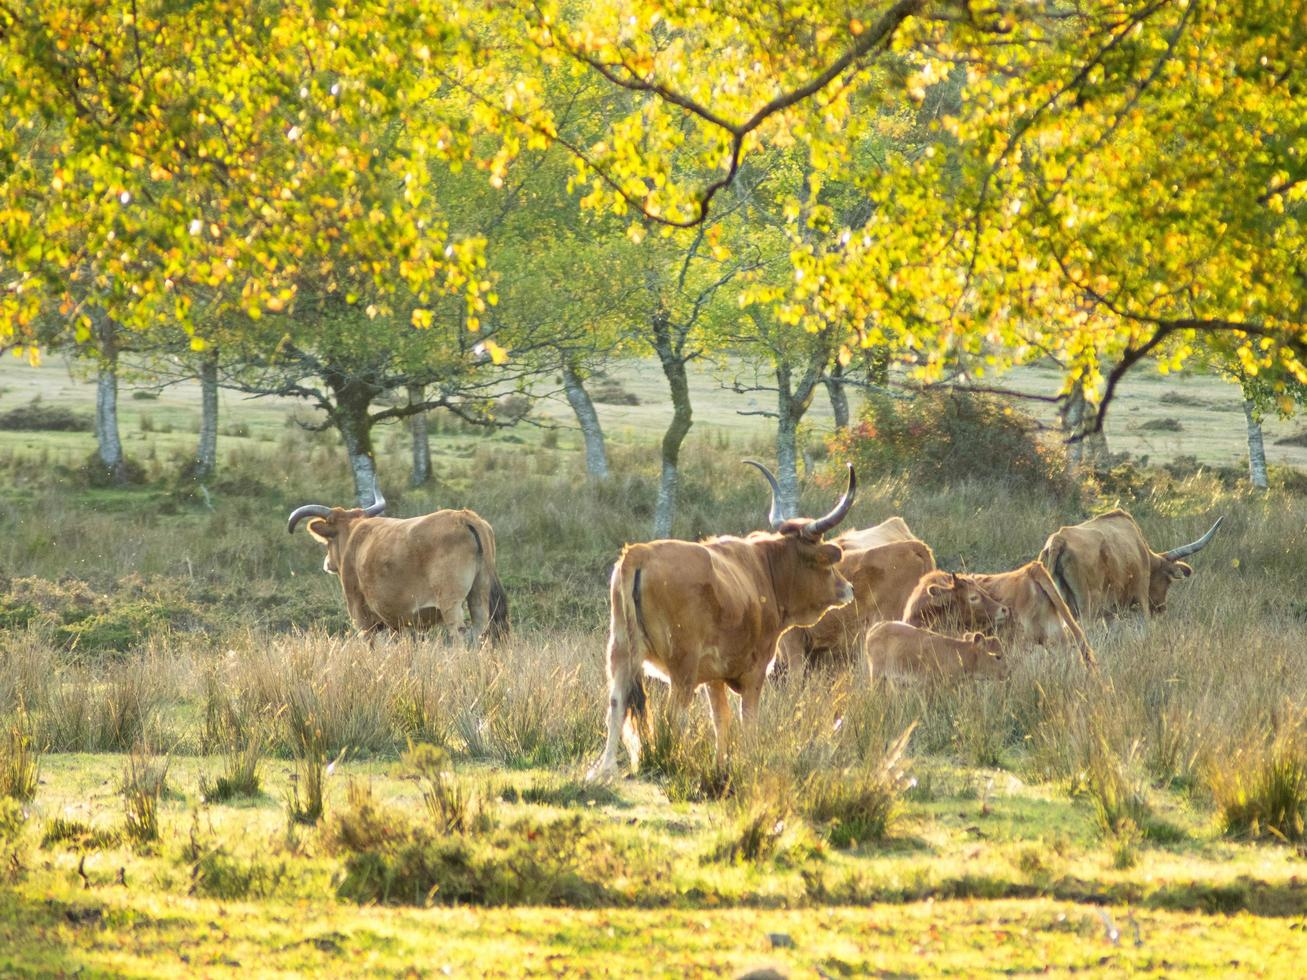 Cows in rural countryside photo